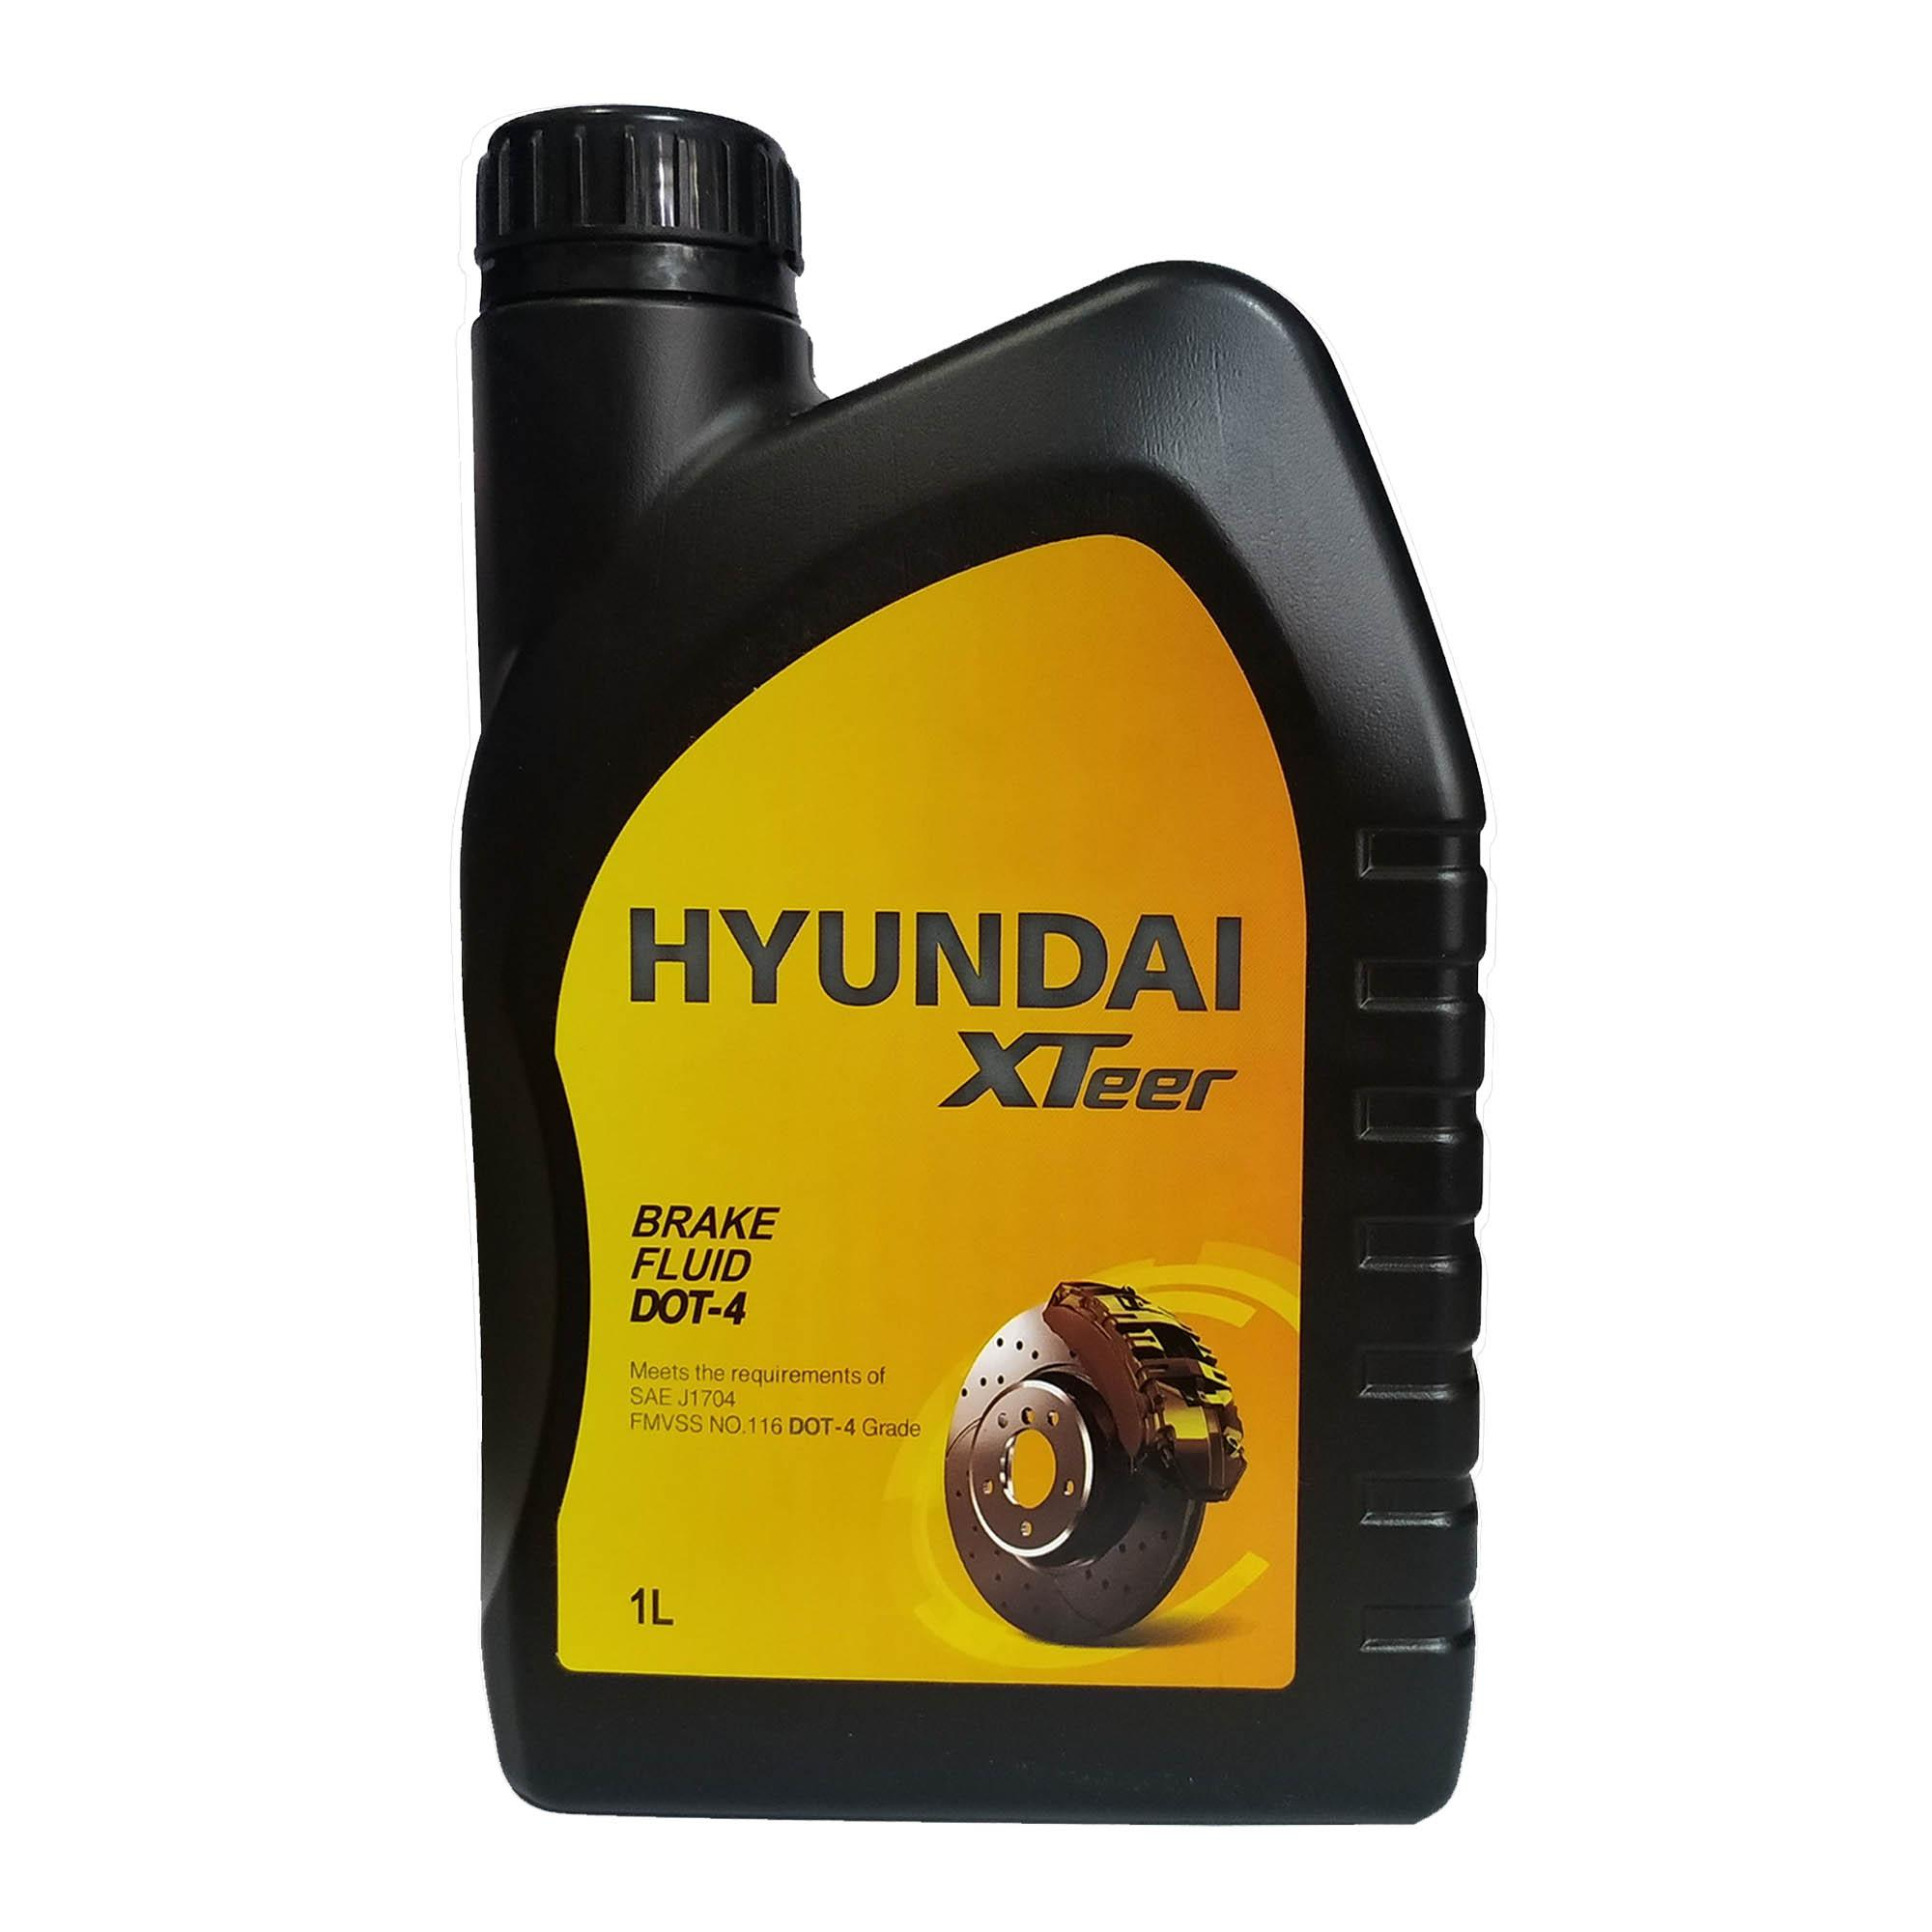 Hyundai Xteer Brake Fluid Dot 4 1l ( 1 Liter ) By Hobbies N Stuff.